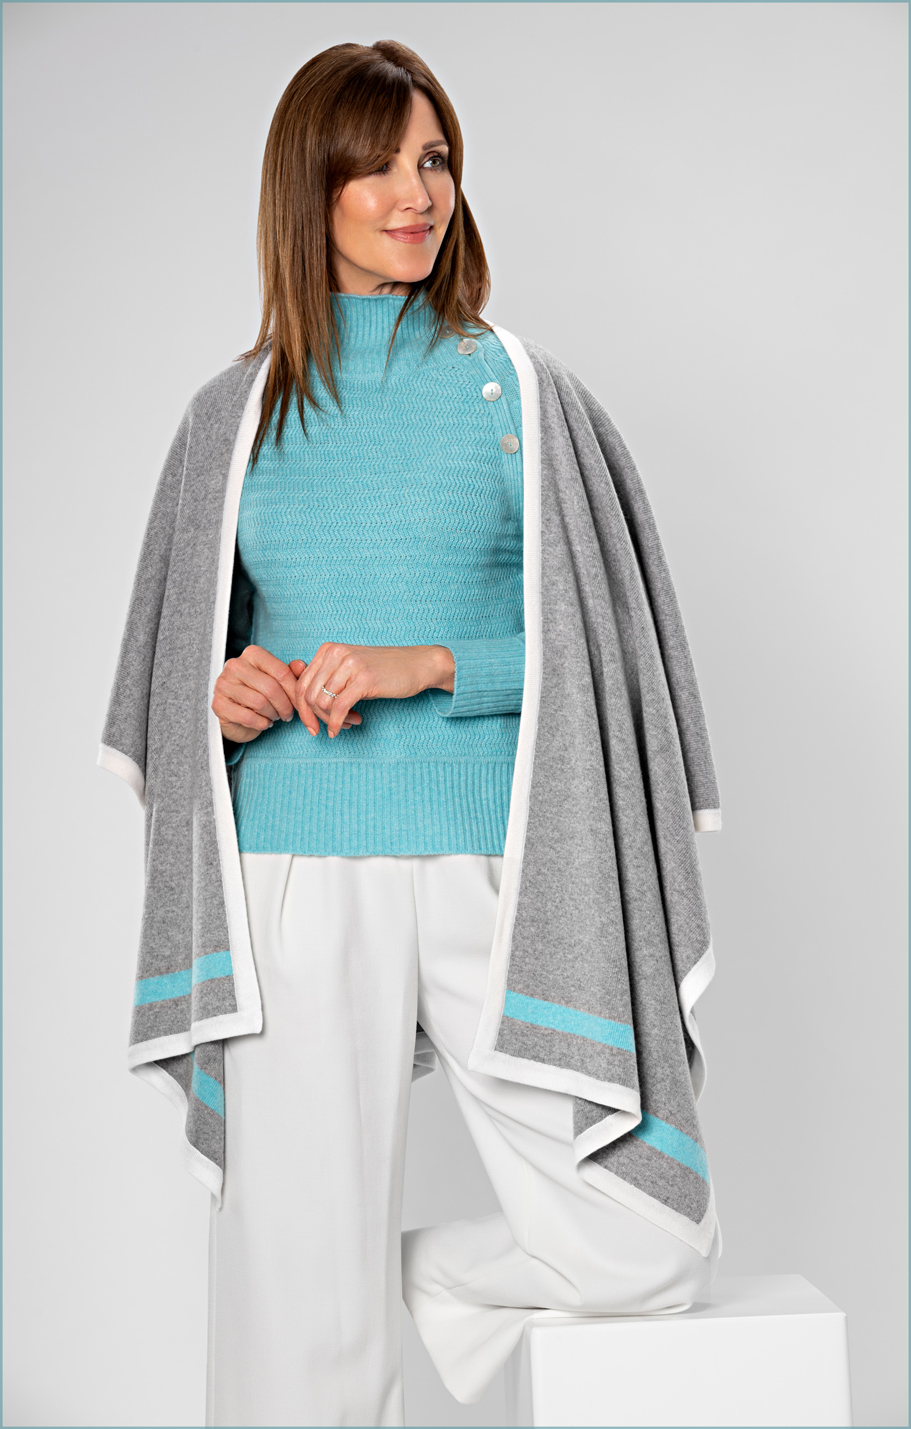 fashion photography of model in cashmere